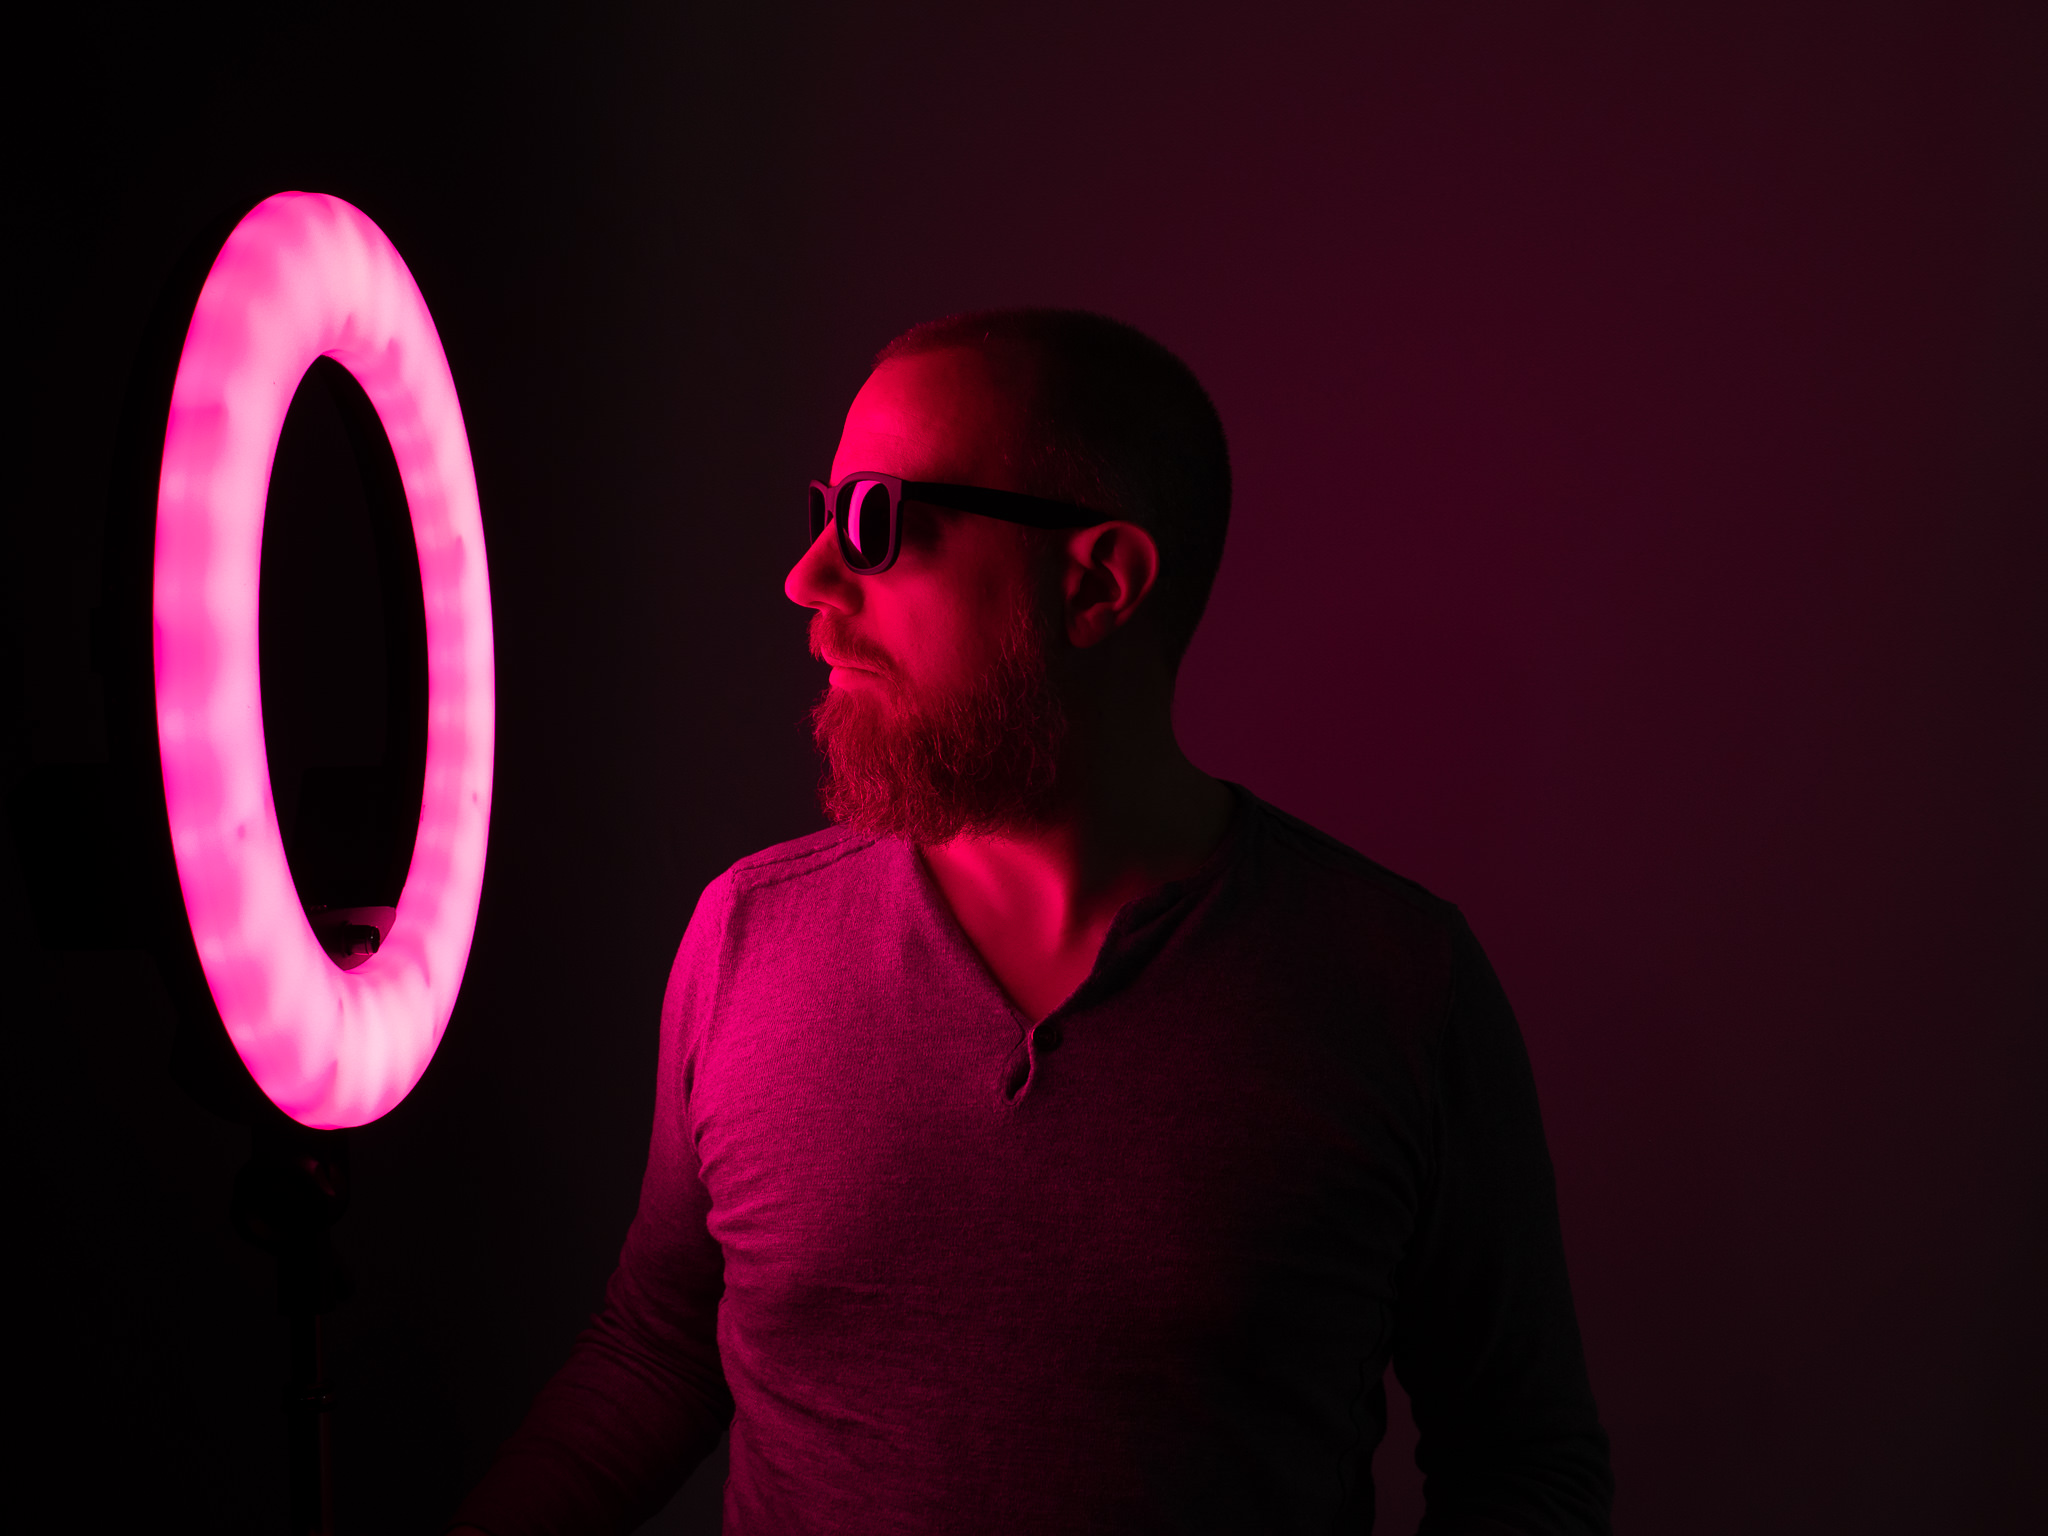 Photo taken with Prismatic Spectra RGB Rainbow LED Ring Light in red / magenta colors